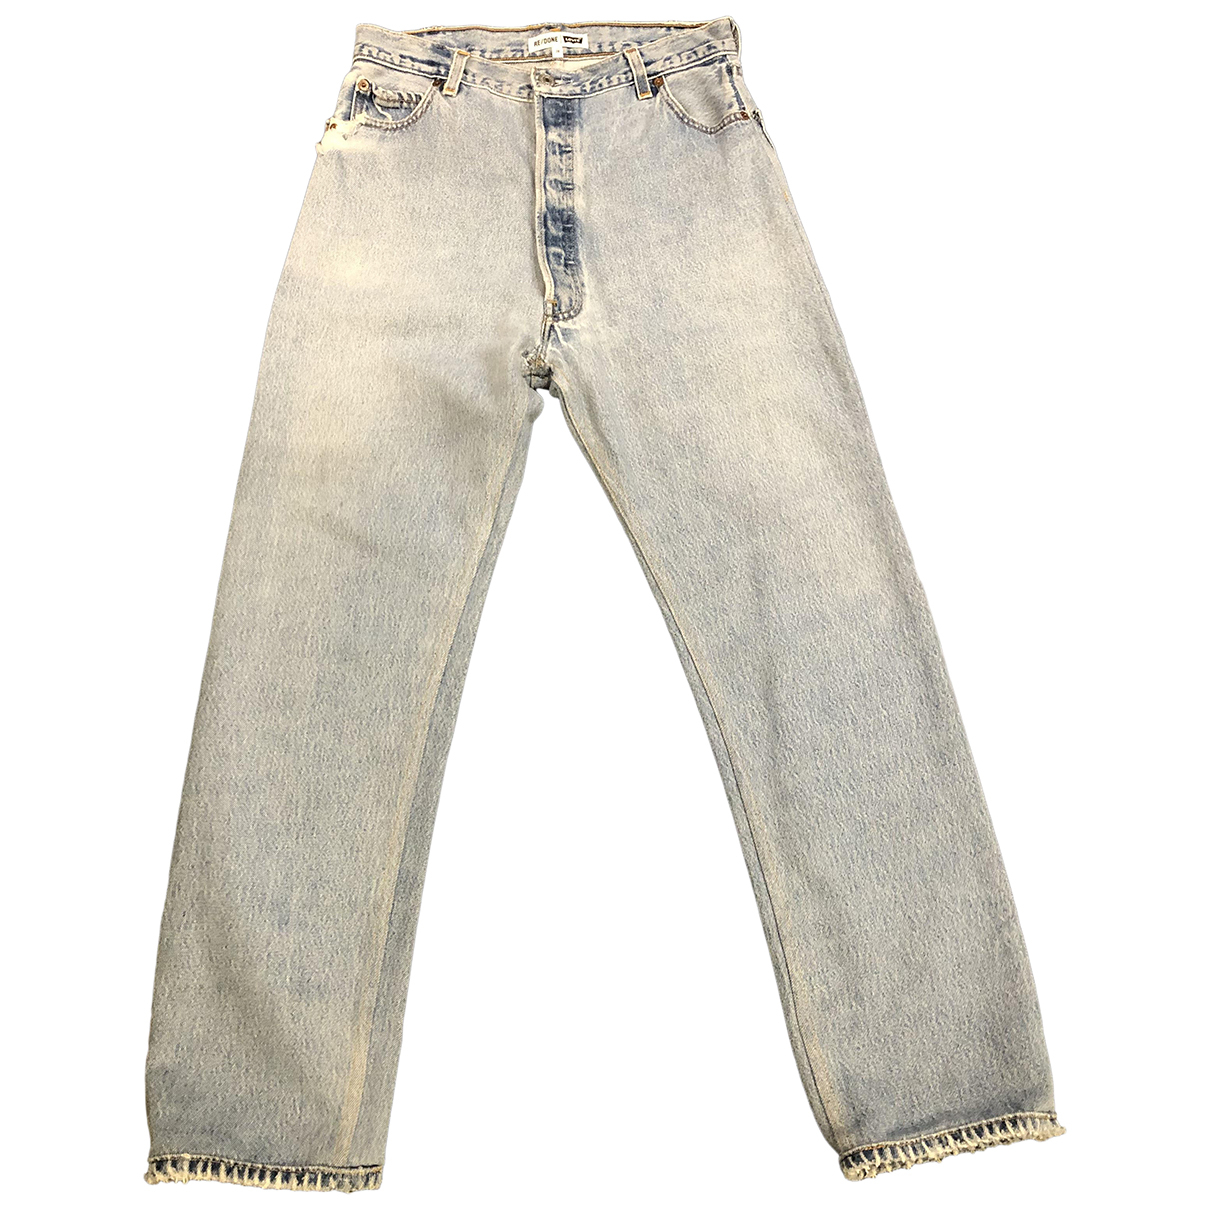 Re/done X Levi's N Denim - Jeans Jeans for Women 28 US